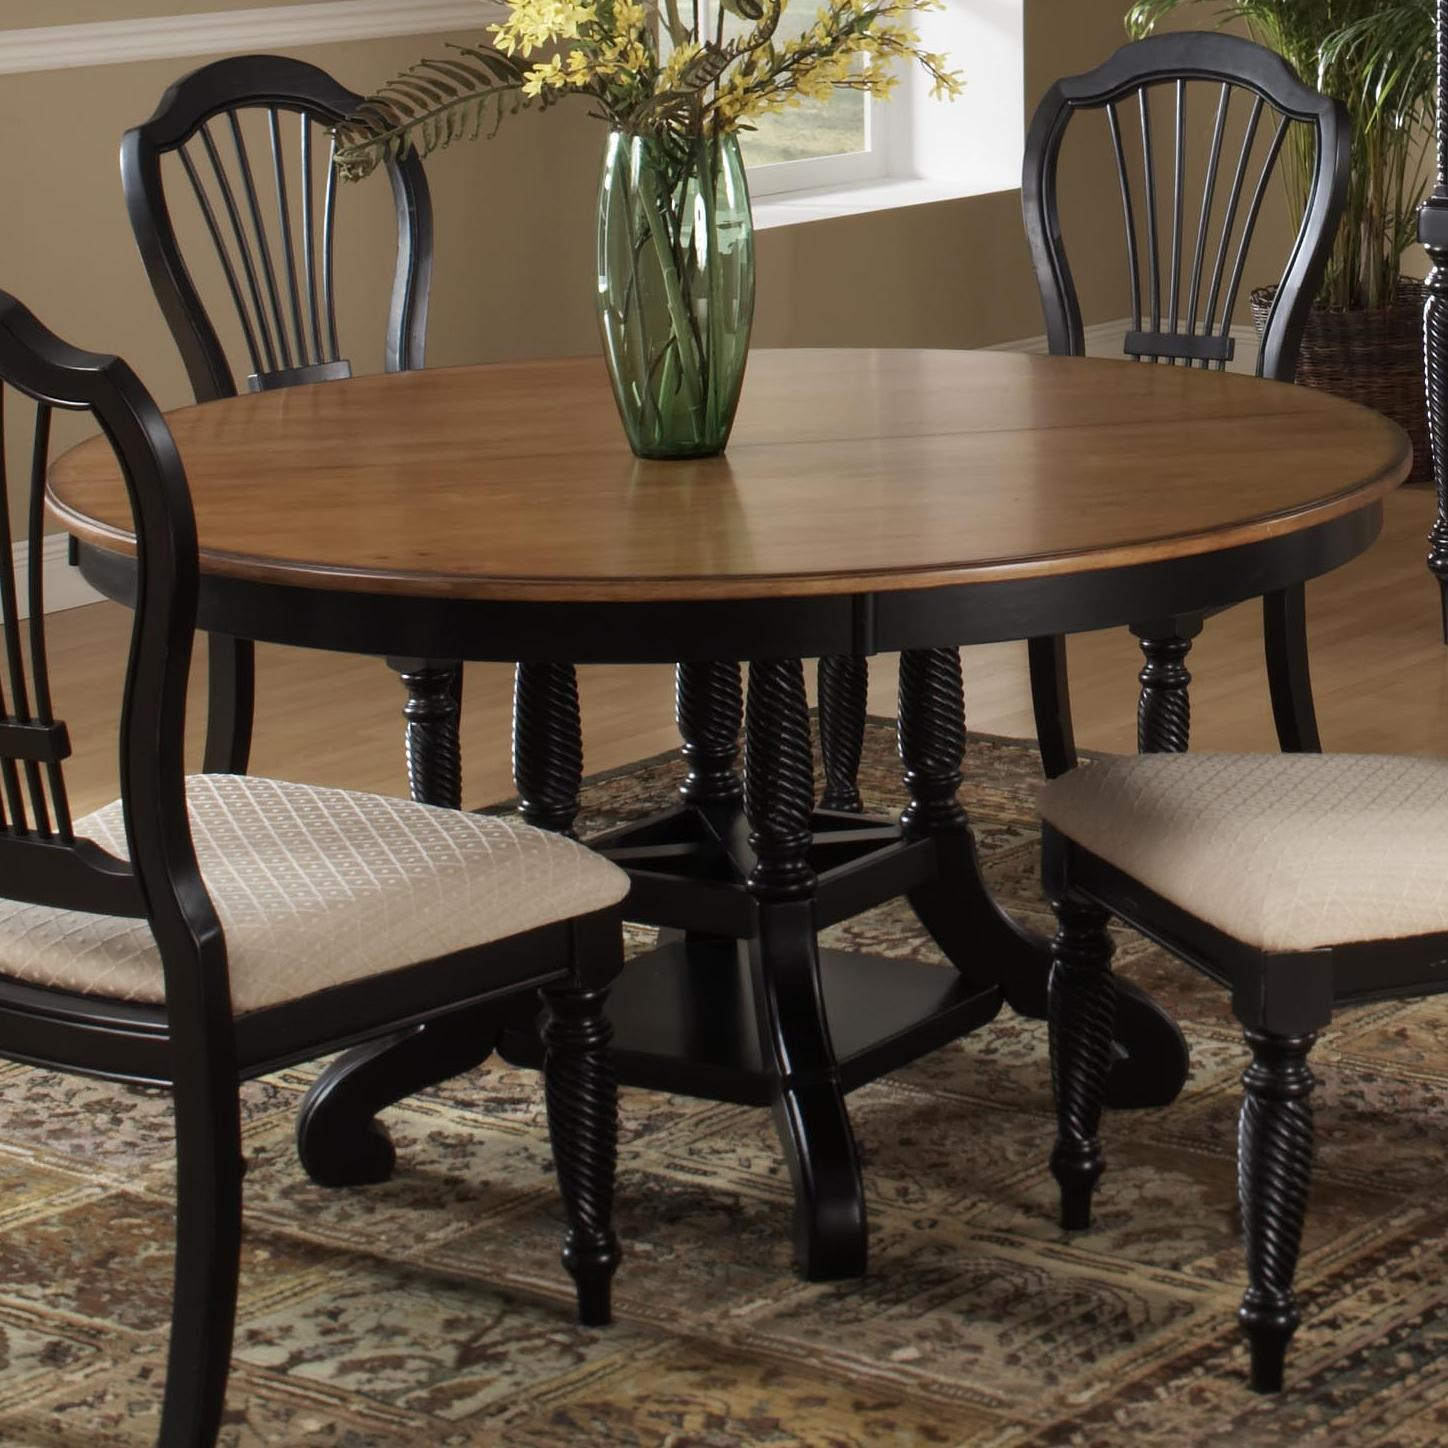 hillsdale wilshire round two-tone leaf dining table - westrich